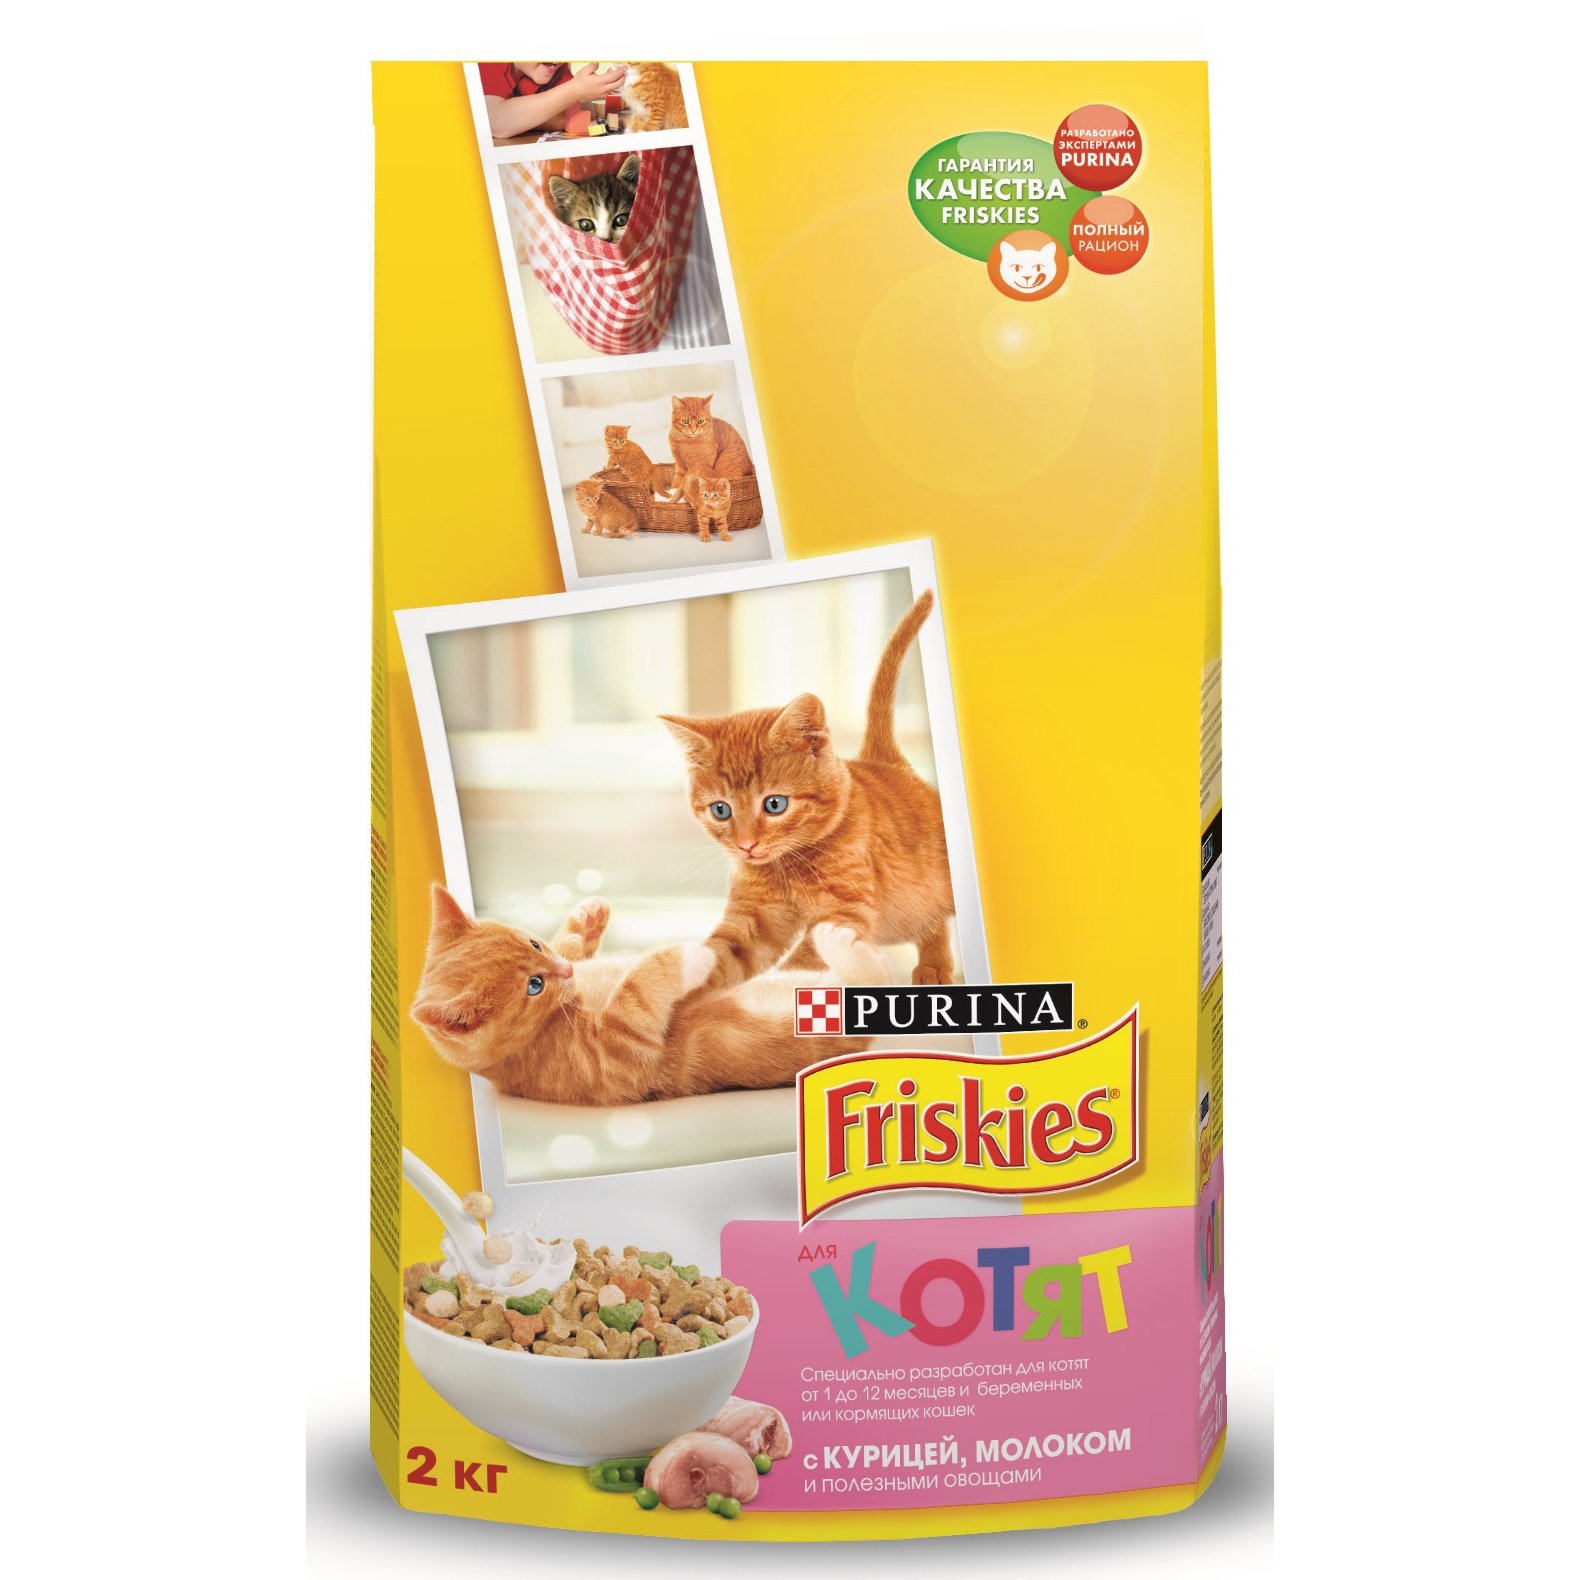 все цены на A set of dry food Friskies for kittens with chicken, milk and healthy vegetables,, Package, 2 kg x 6 pcs. онлайн